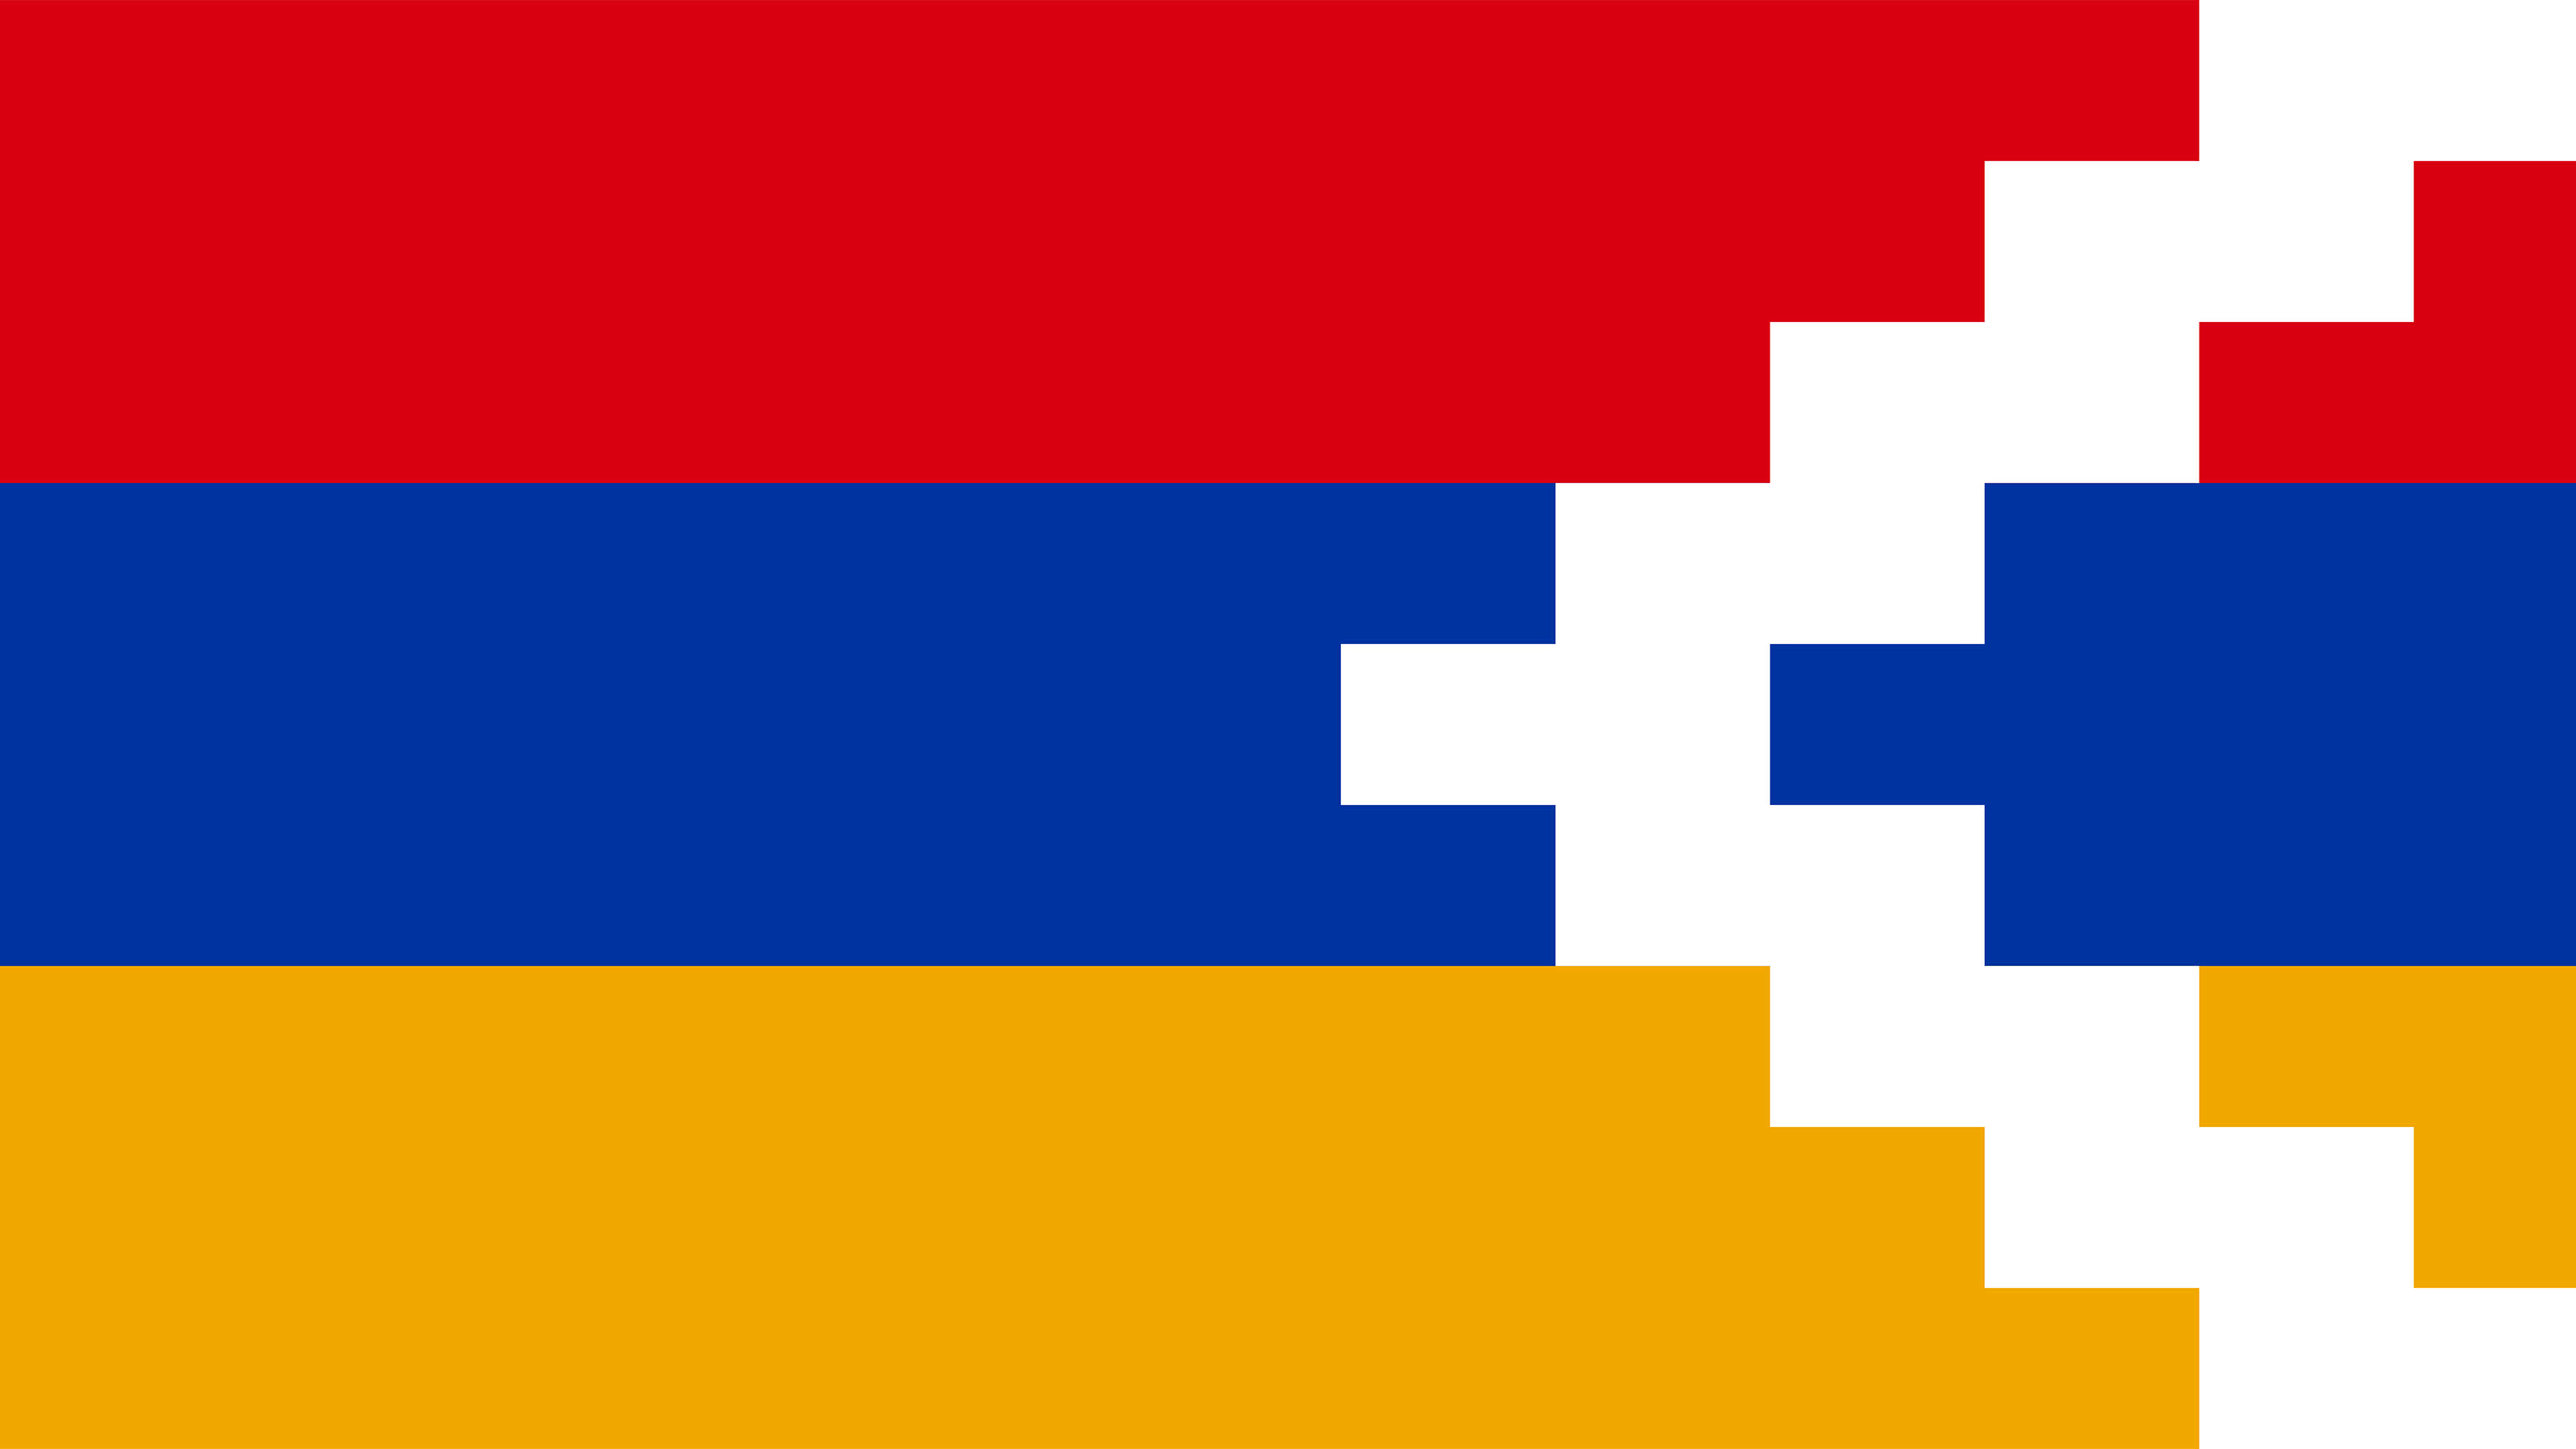 artsakh flag uhd 4k wallpaper